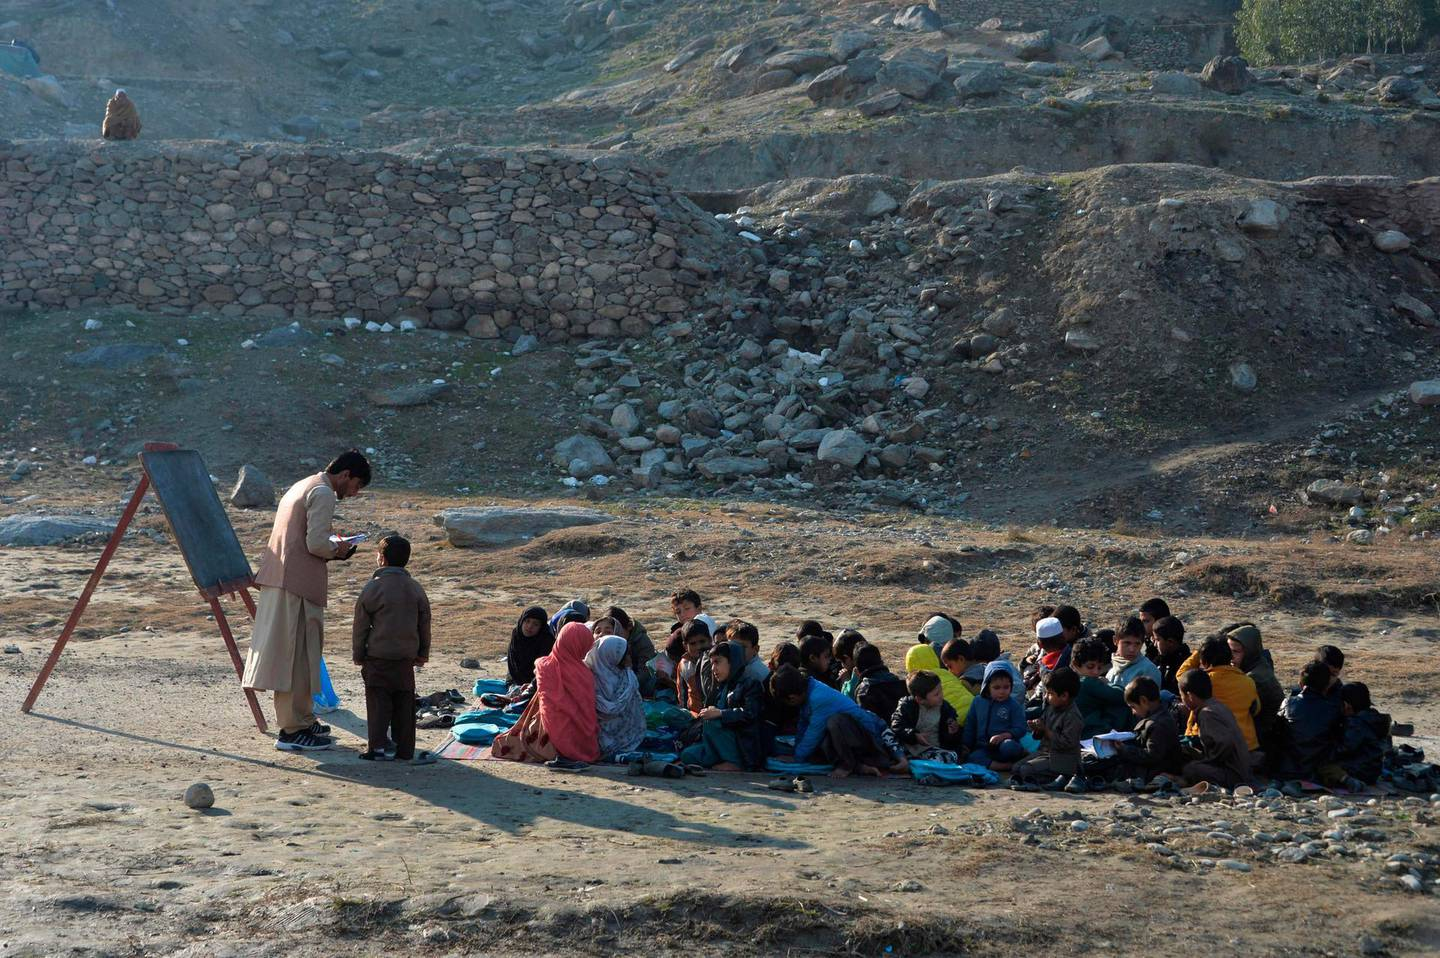 School children take part in a lesson in an open-air classroom in Qarghayi district of Laghman Province on January 20, 2020. / AFP / NOORULLAH SHIRZADA